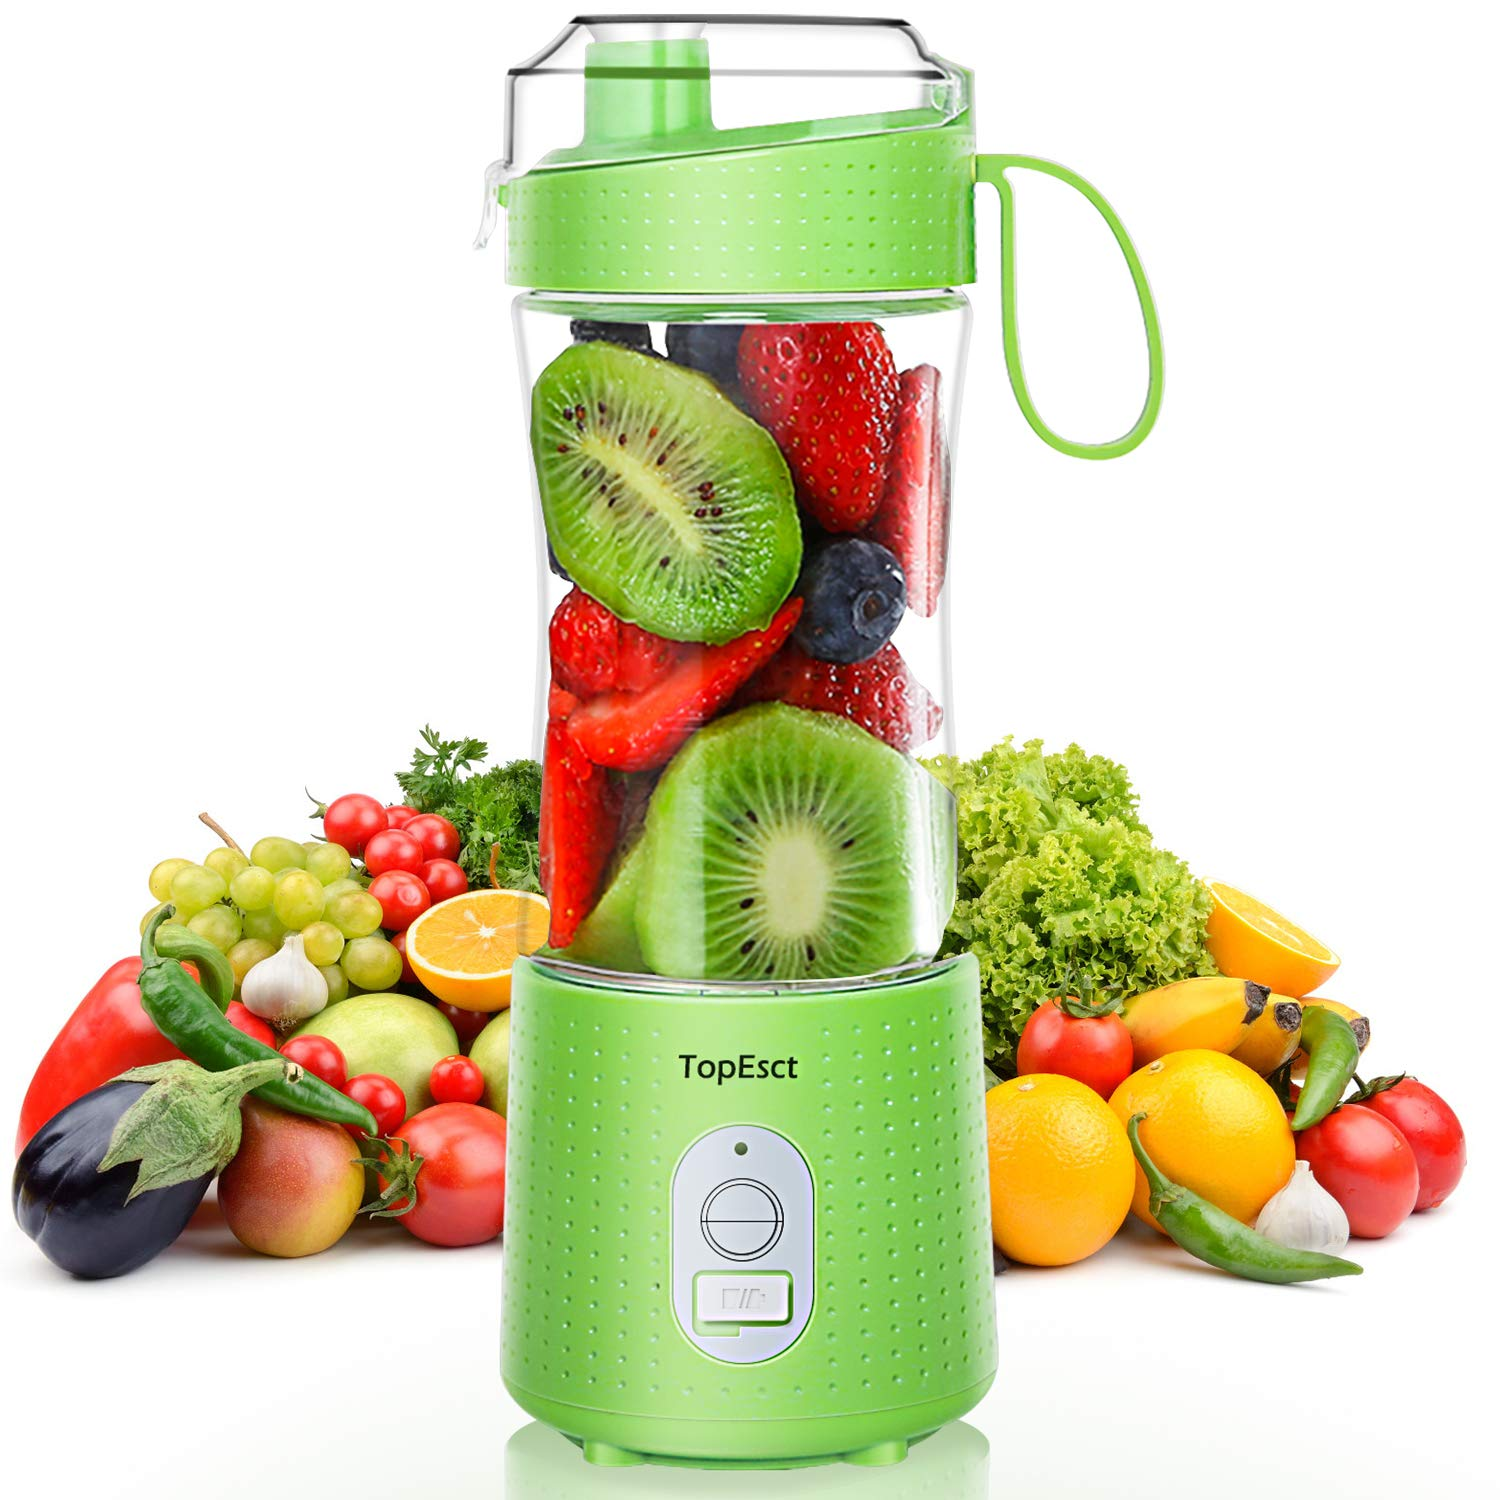 TOPESCT Portable Blender, 380ml Mini Blender for Smoothies and Shakes with 13oz USB Rechargeable Battery + 6 Stainless Steel Blades, BPA Free for Ice Small Blender Mixer Home/Outdoors-Green